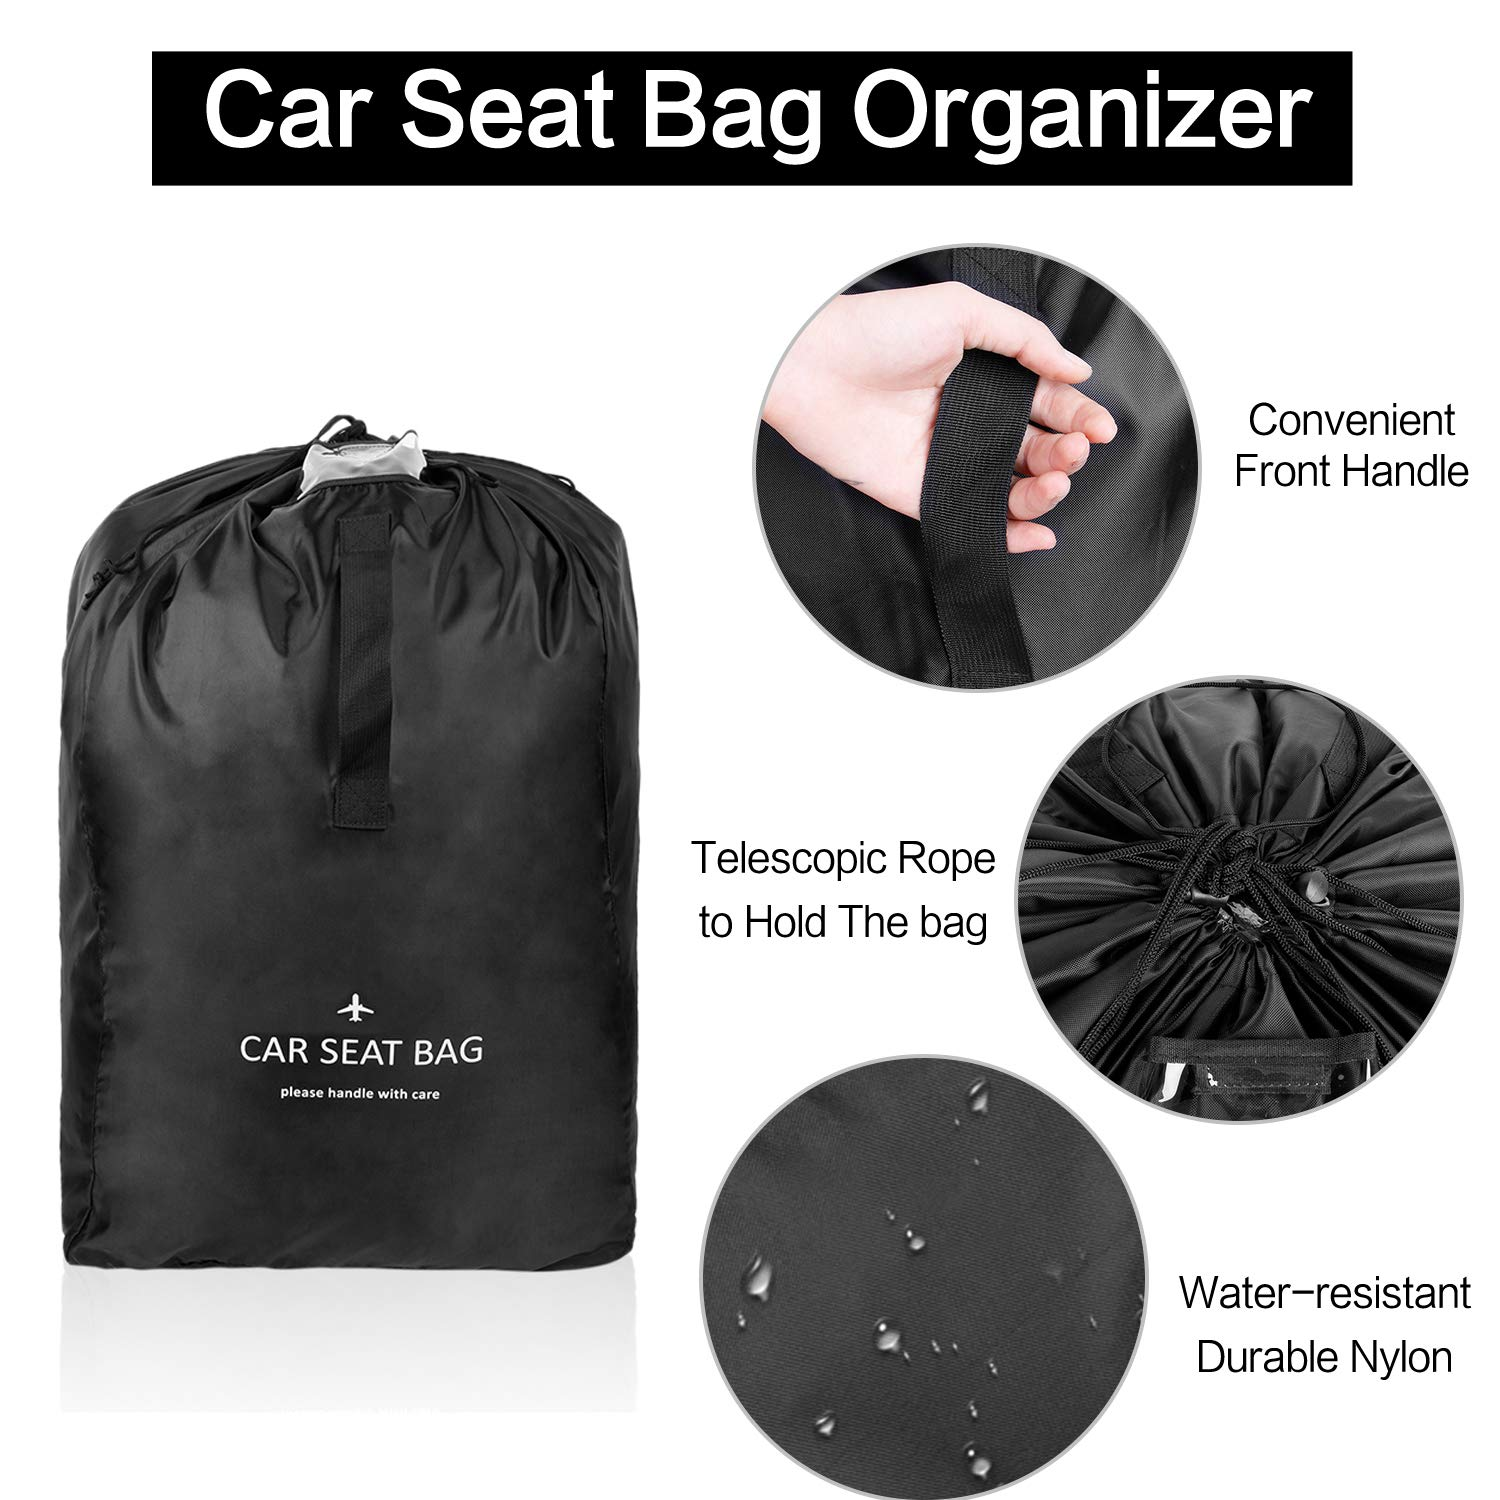 Durable Car Seat Travel Bag with Padded Shoulder Straps Easy to Transport Blue/&Black Saving Money Lightweight Ceekii Stroller Bag for Airplane Gate Check Bag Waterproof